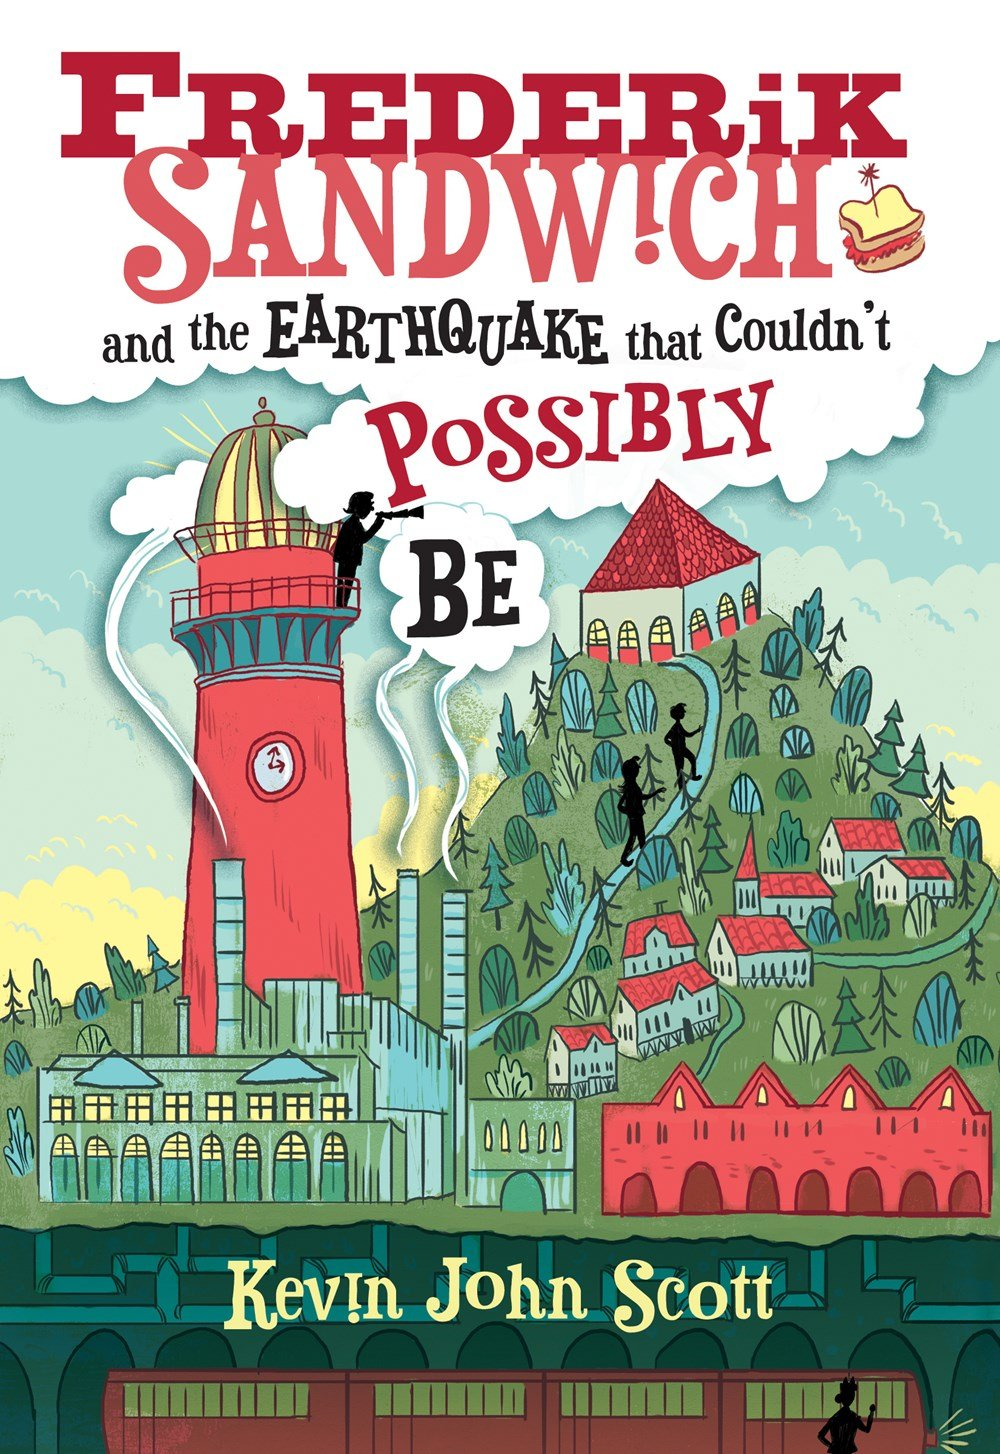 Read Online Frederik Sandwich and the Earthquake that Couldn't Possibly Be ePub fb2 book